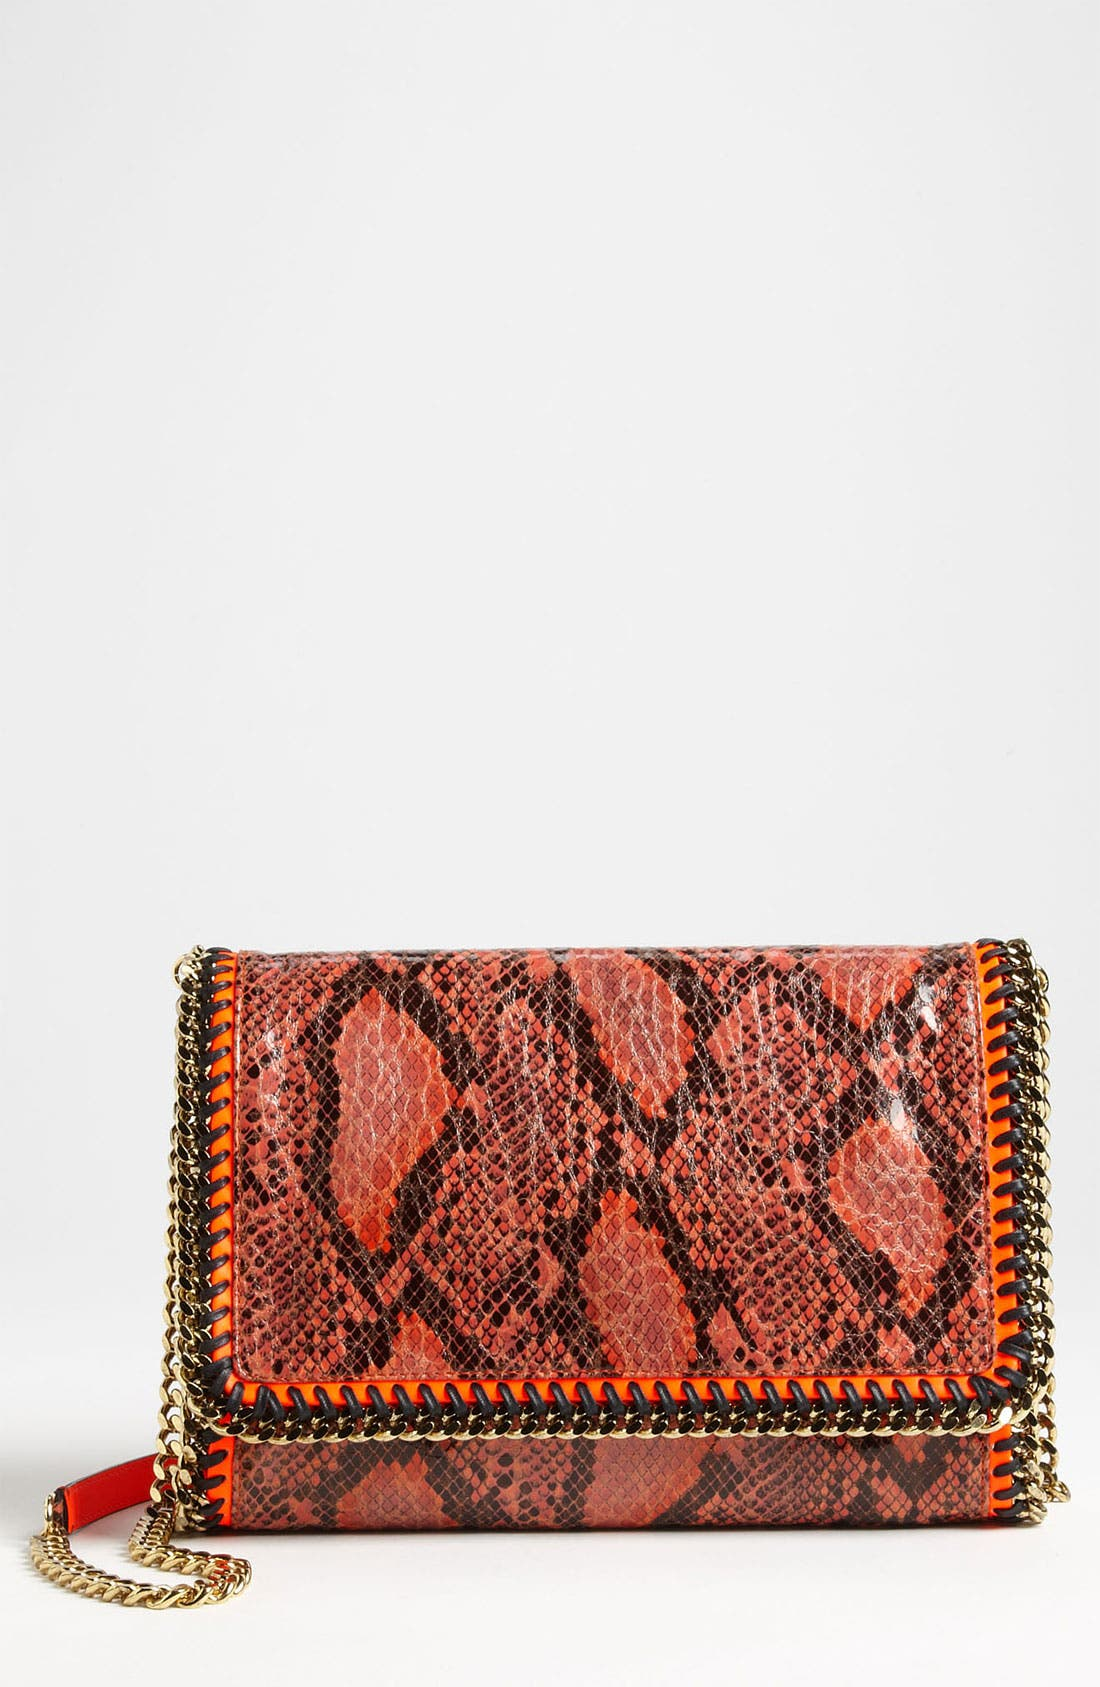 Alternate Image 1 Selected - Stella McCartney 'Falabella' Faux Python Crossbody Bag